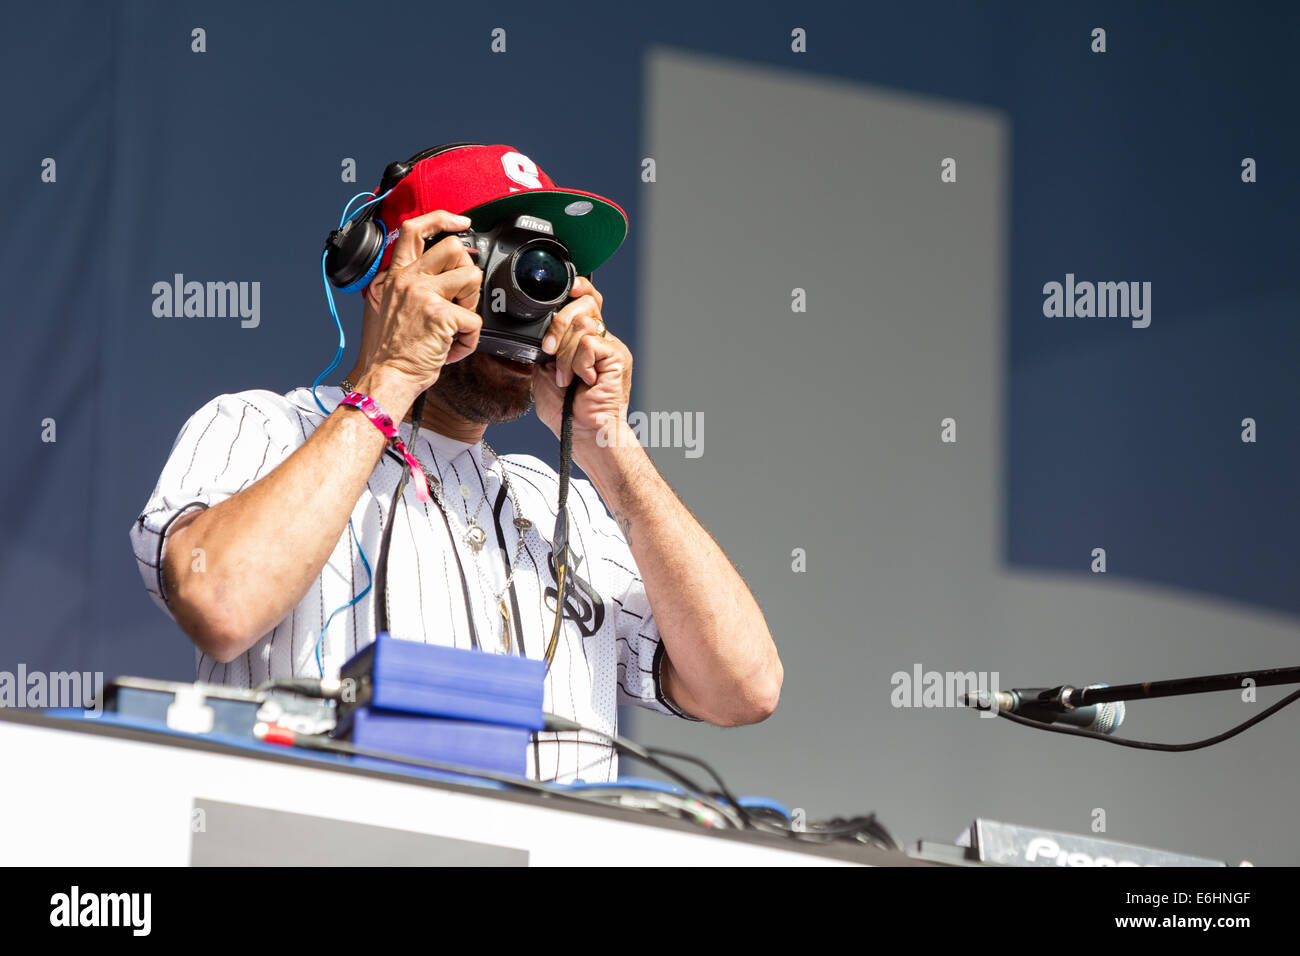 Liverpool, UK. 24th Aug, 2014. British electronic music artist and DJ, Goldie, played a set in front of thousands - Stock Image